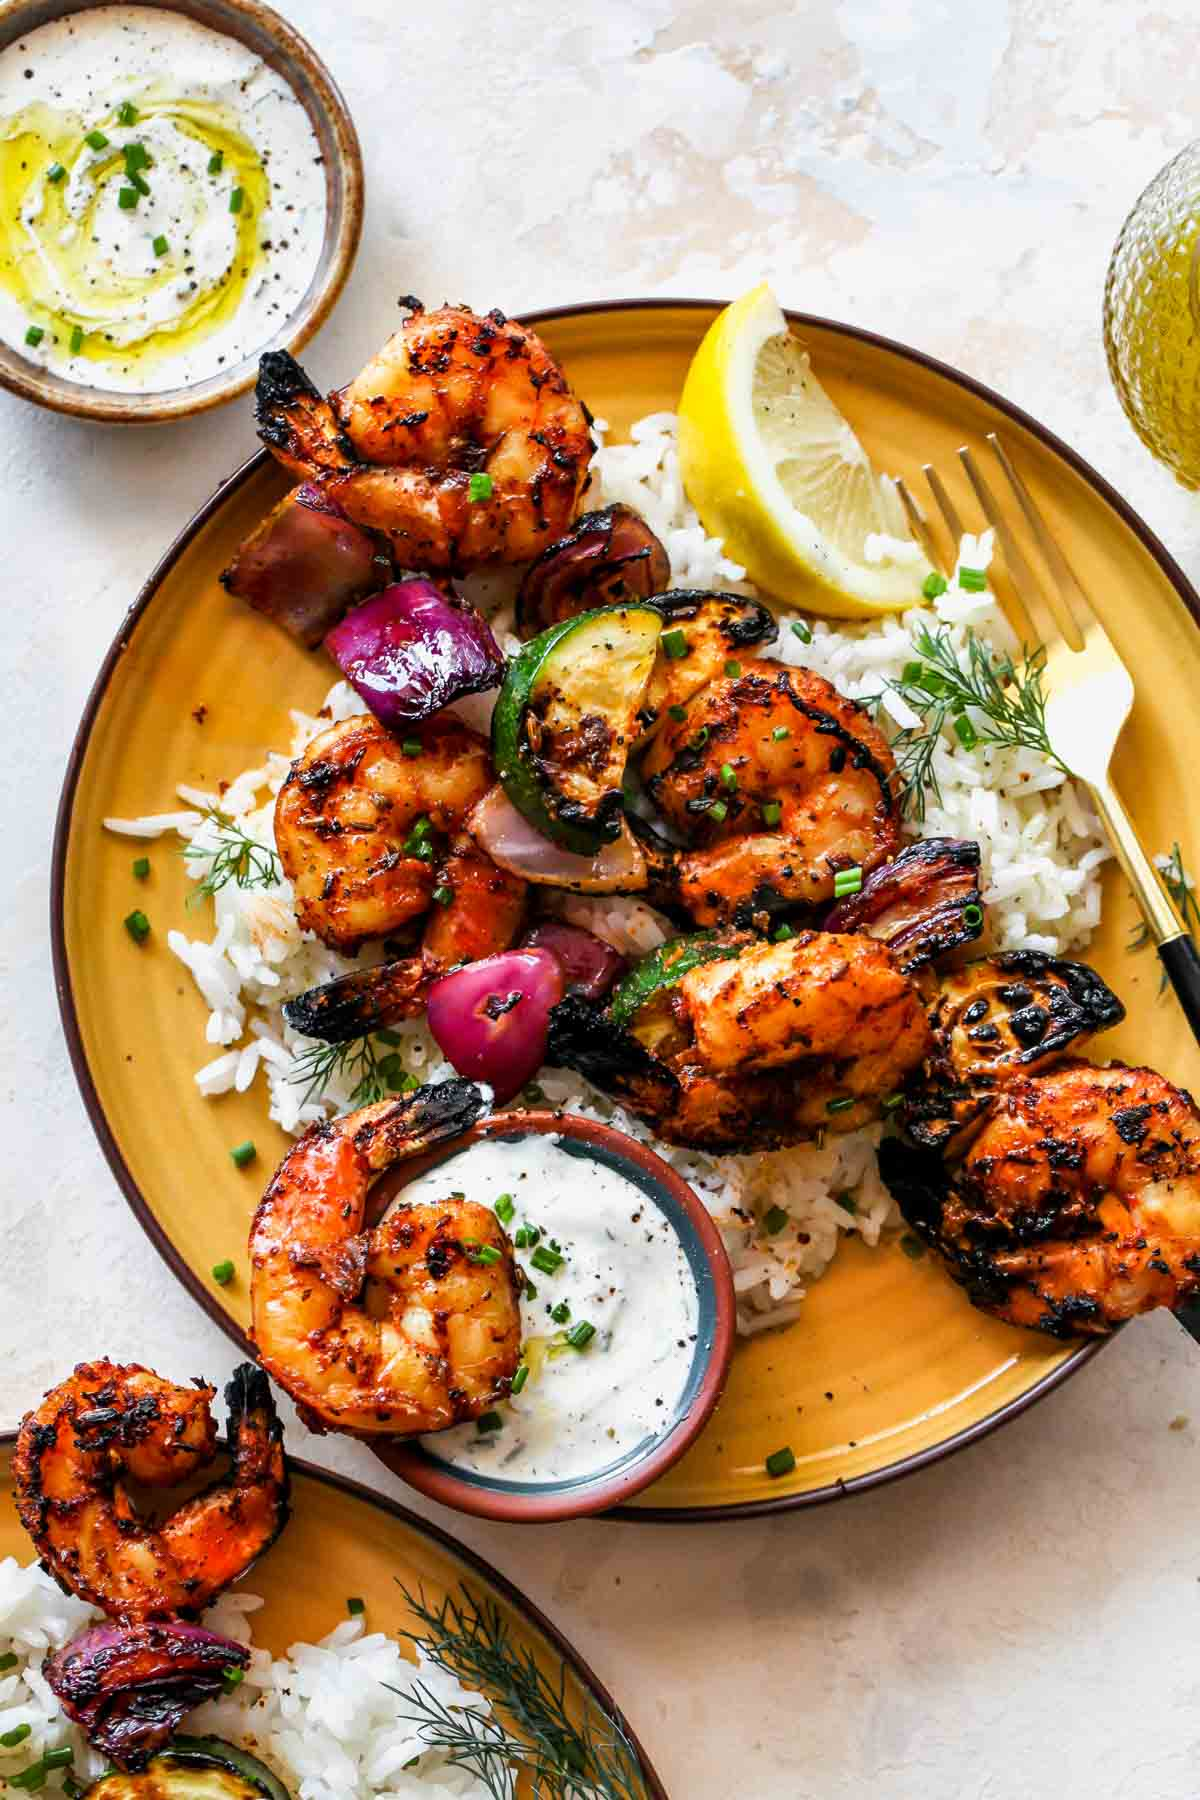 Shrimp kebabs on a bed of rice with a side of creamy sauce